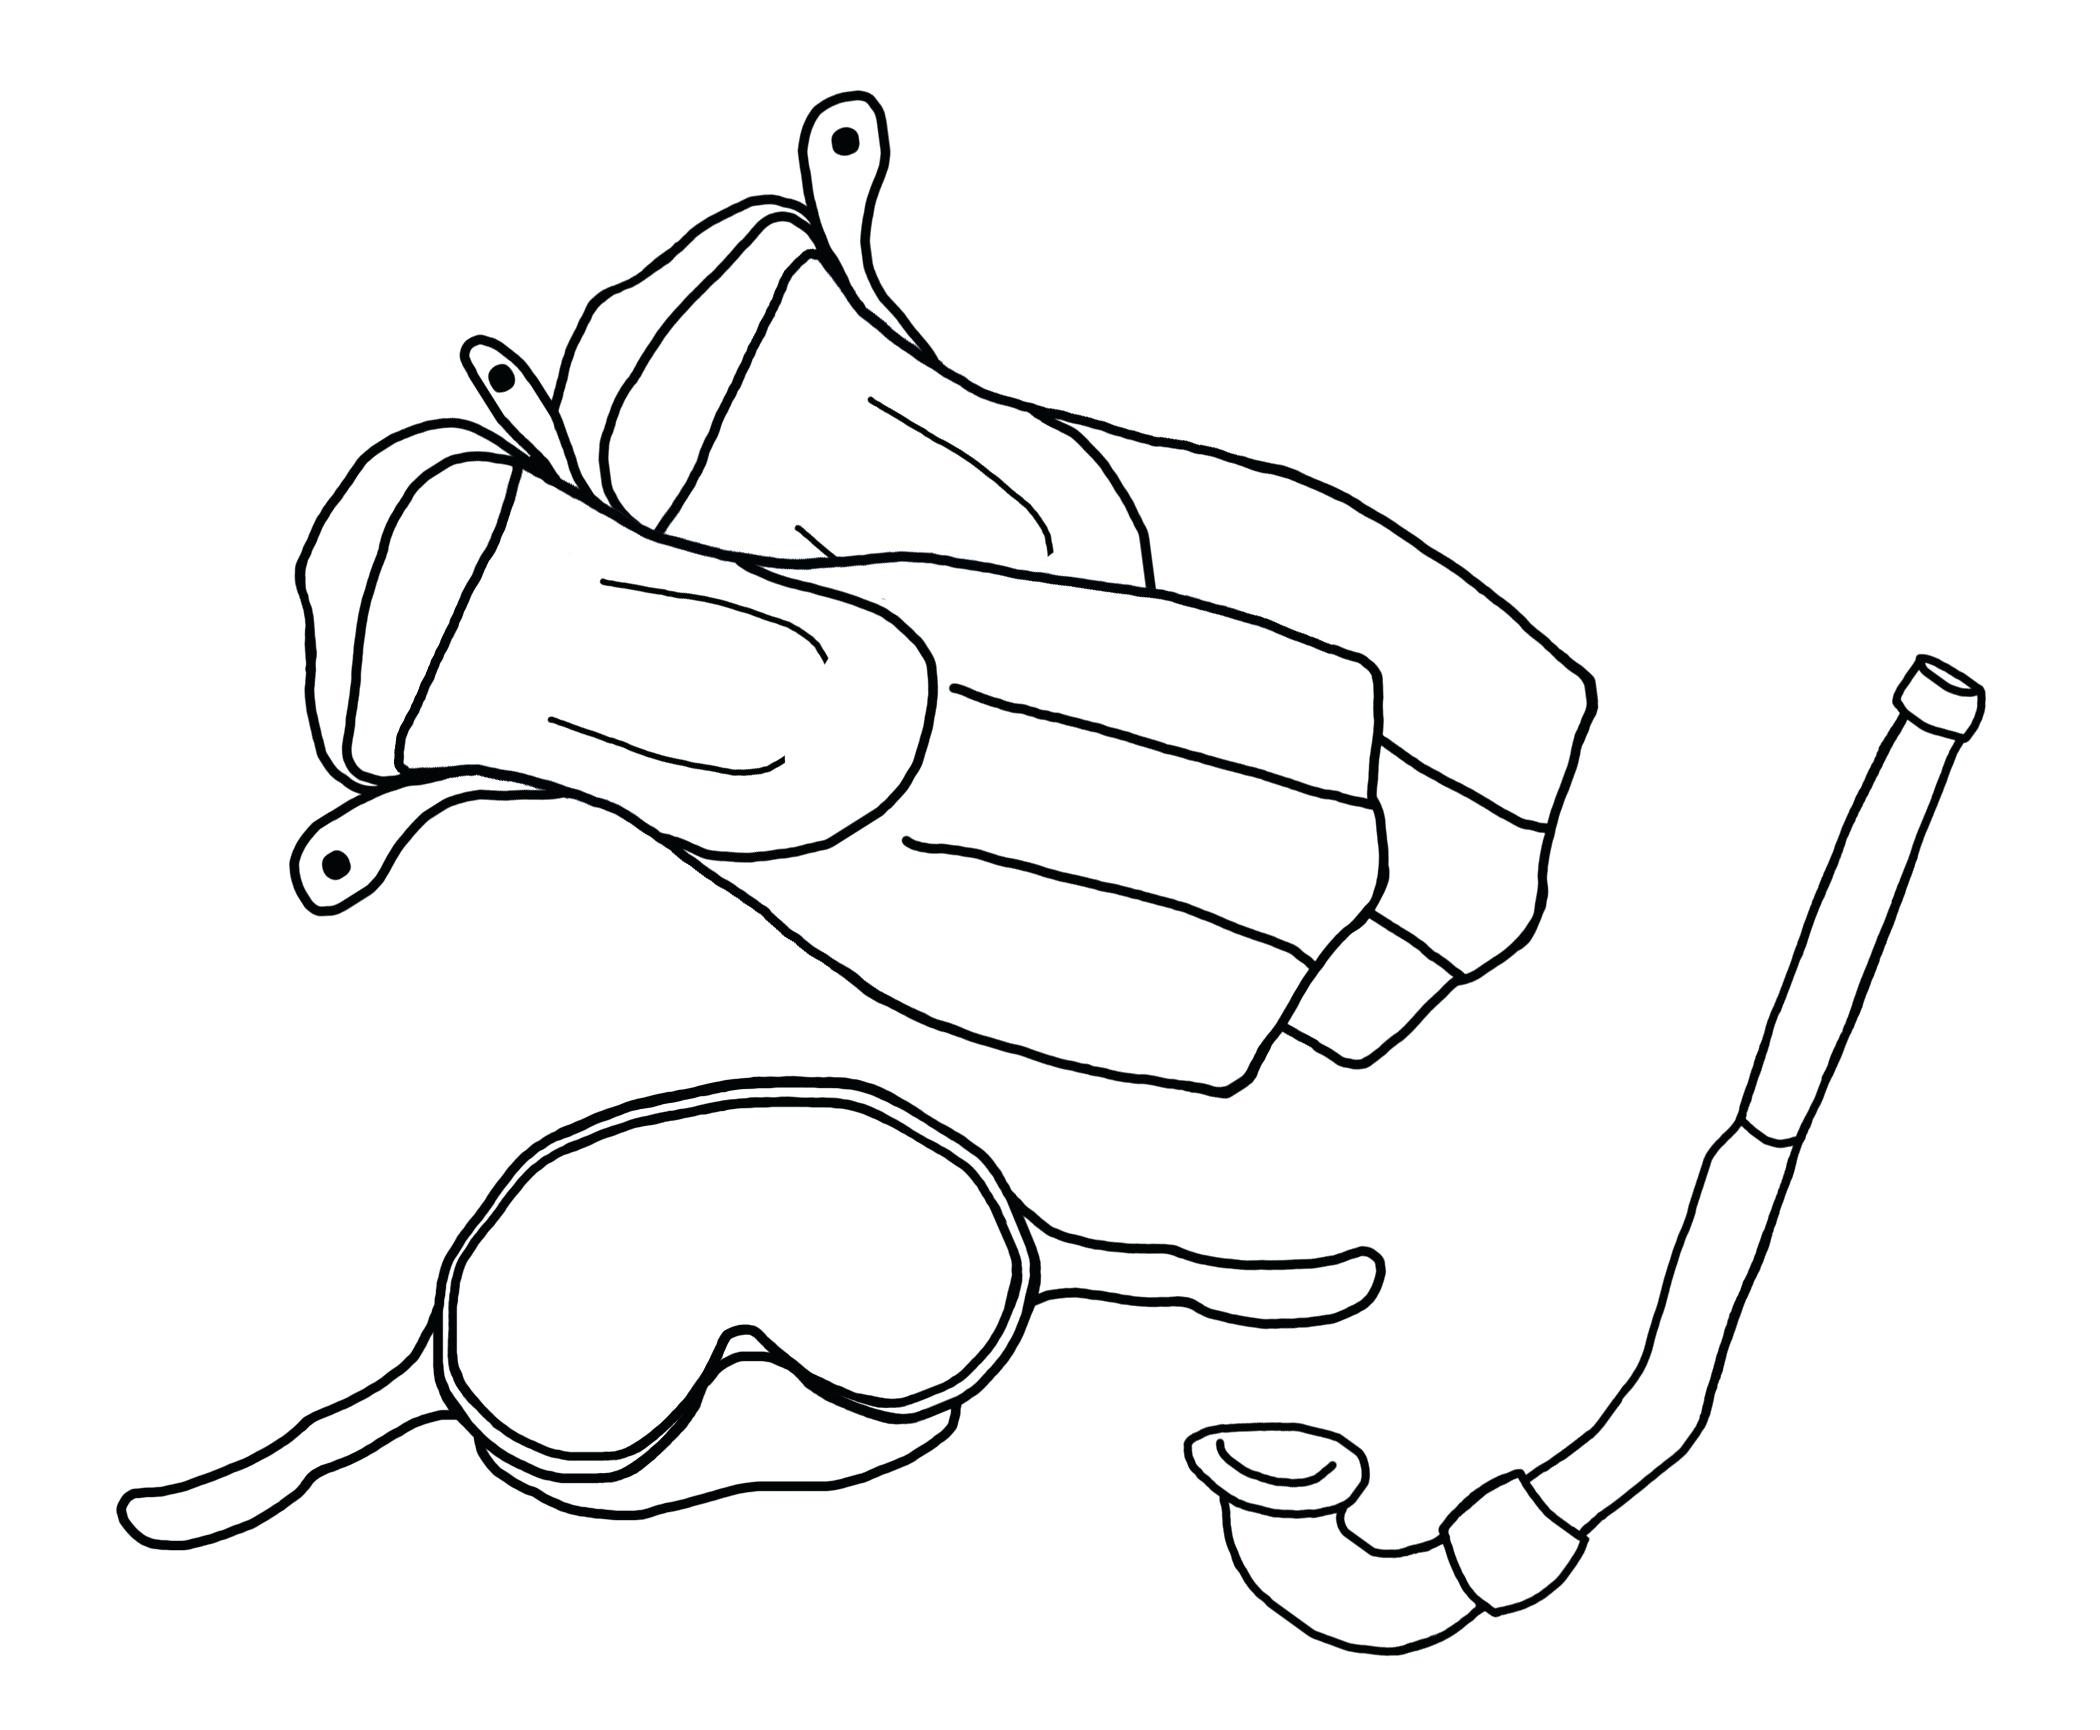 2100x1730 geometric shapes coloring pages drawn goggles page pencil